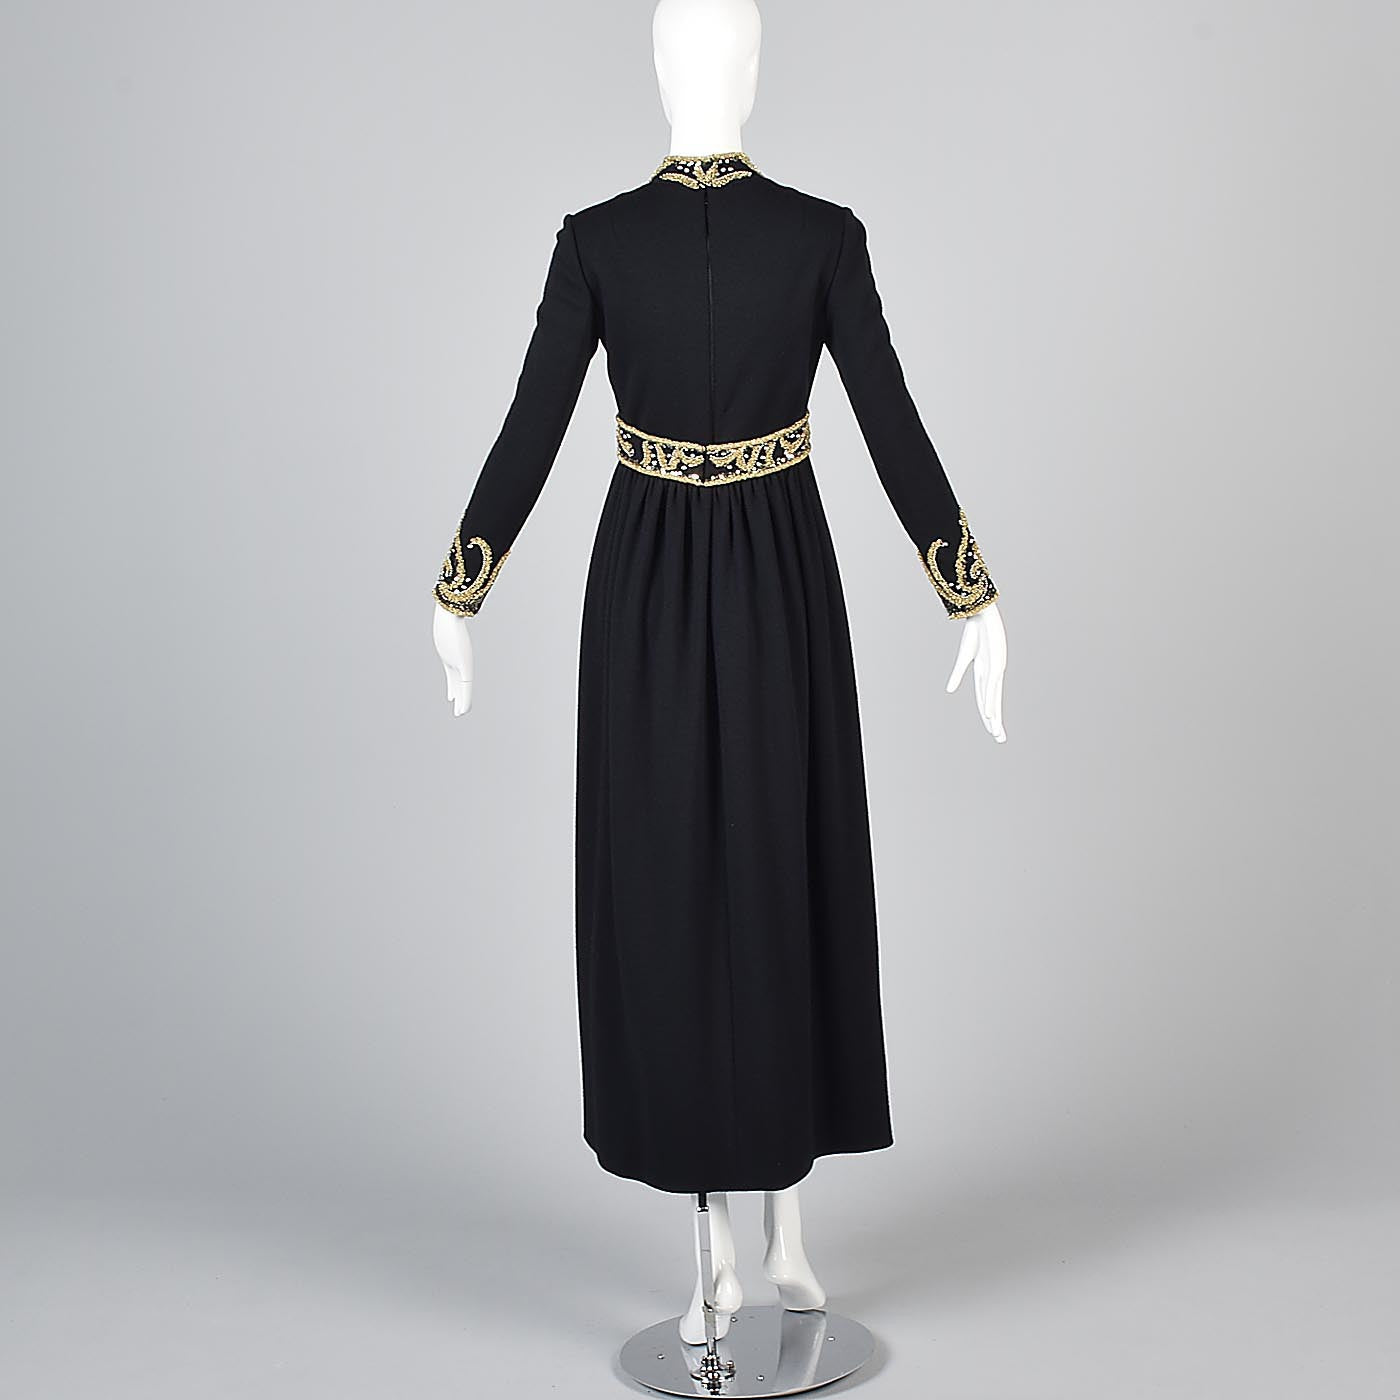 George Halley Black Knit Evening Dress with Beaded Trim